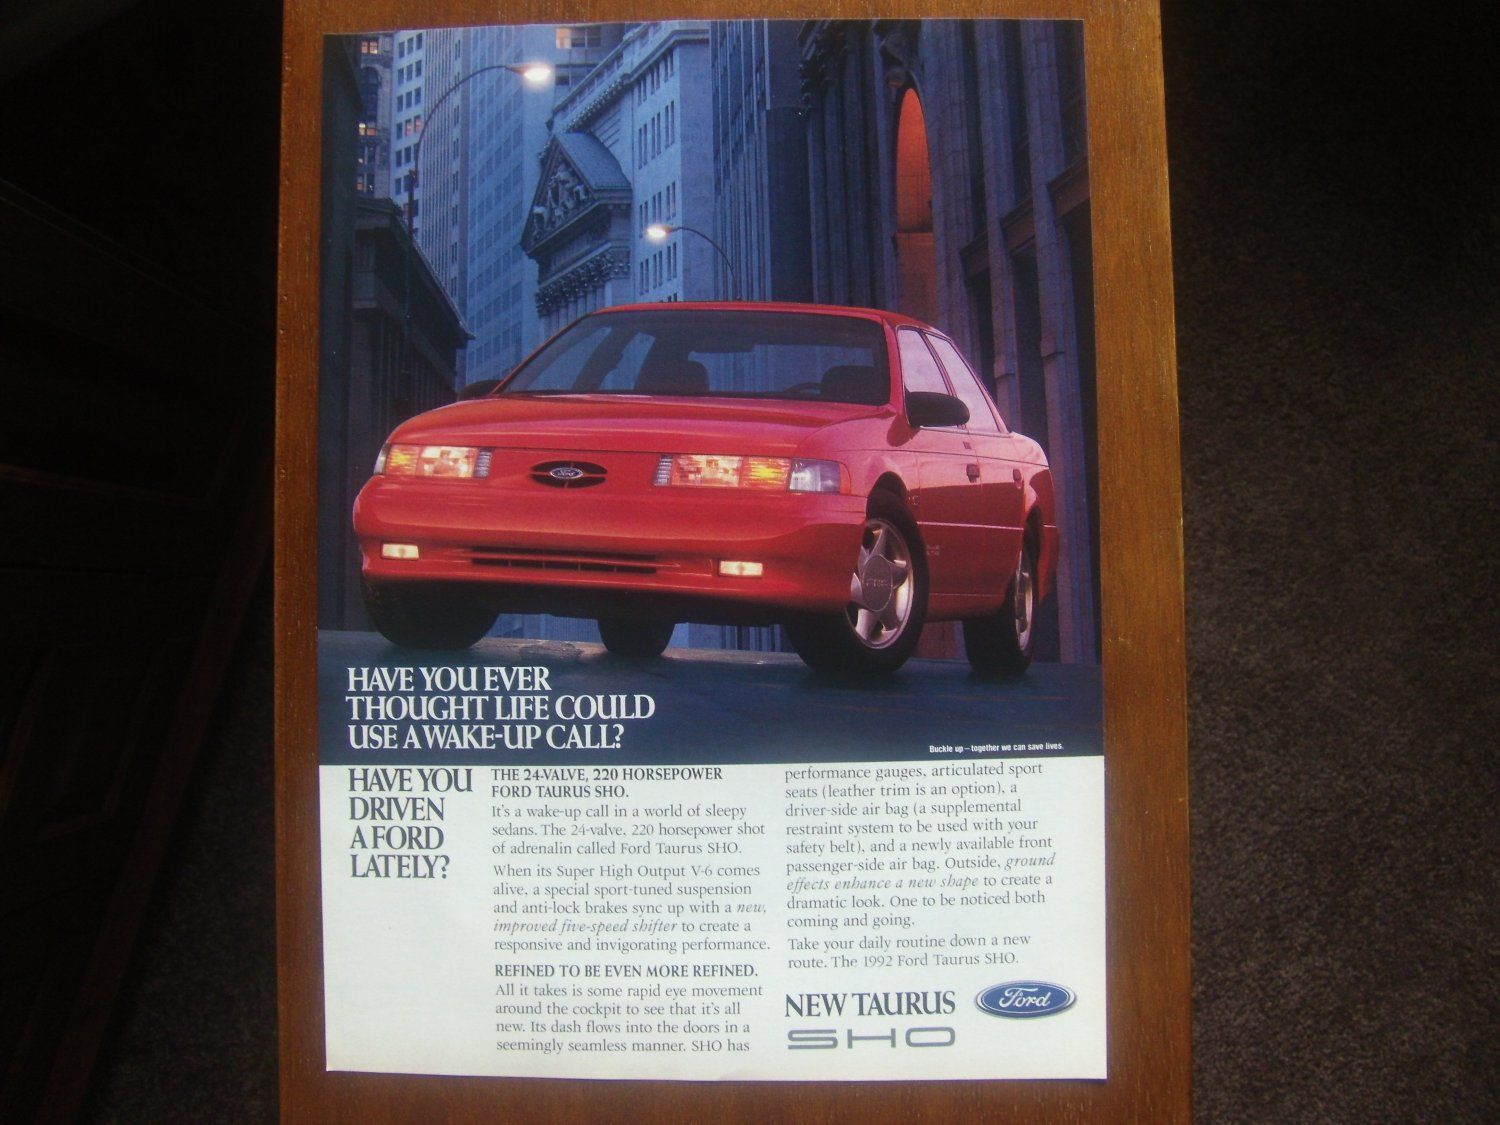 Ford taurus sho classic vintage advertisement ad